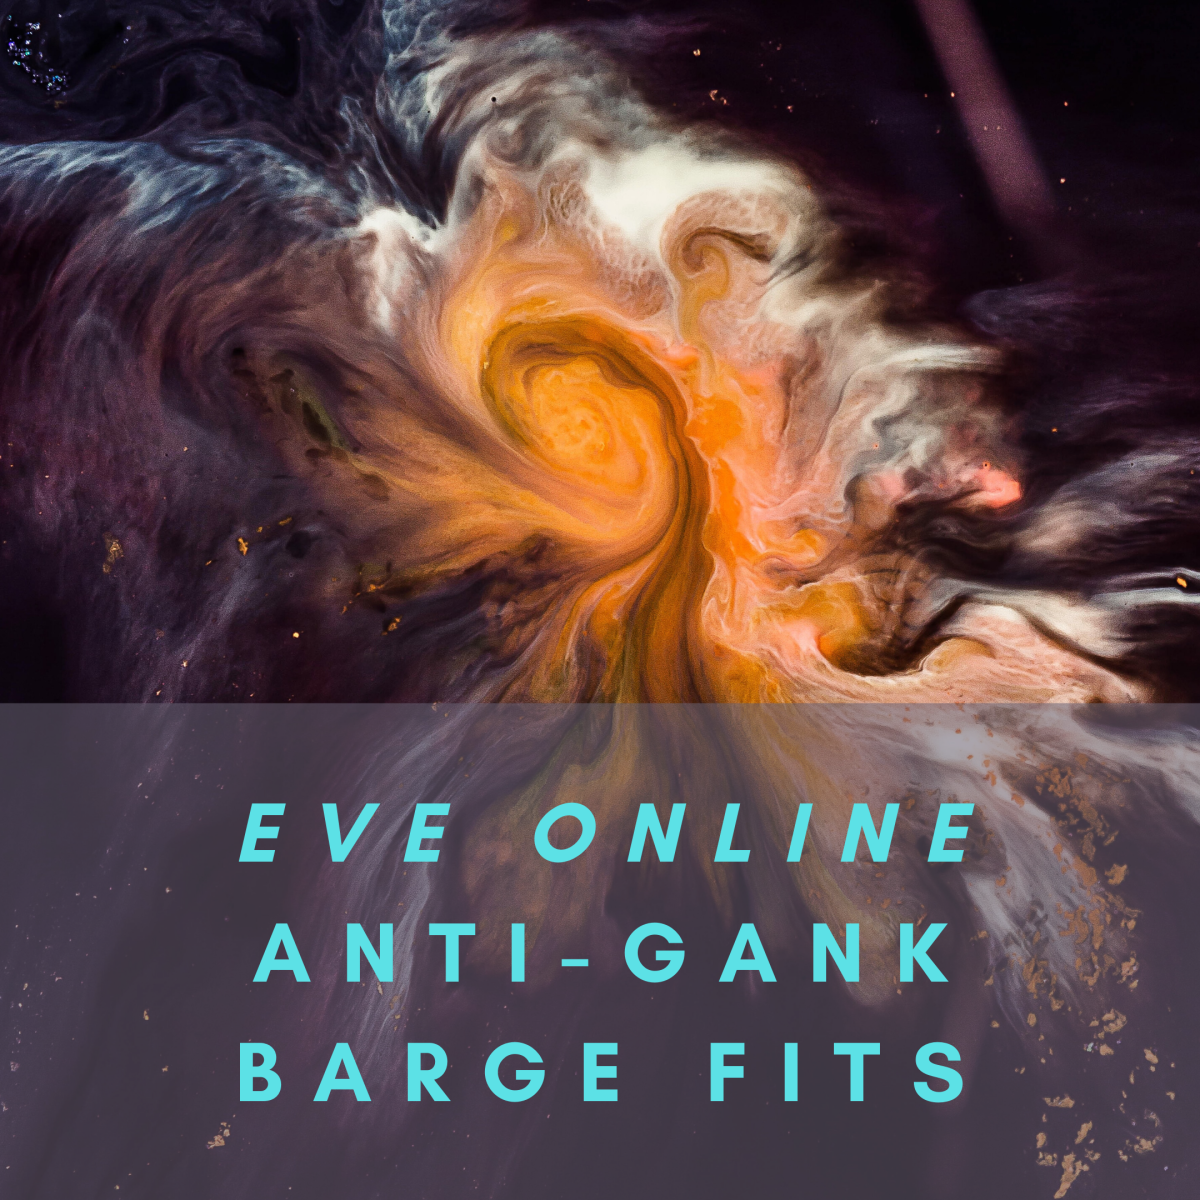 Eve Online and Ganking